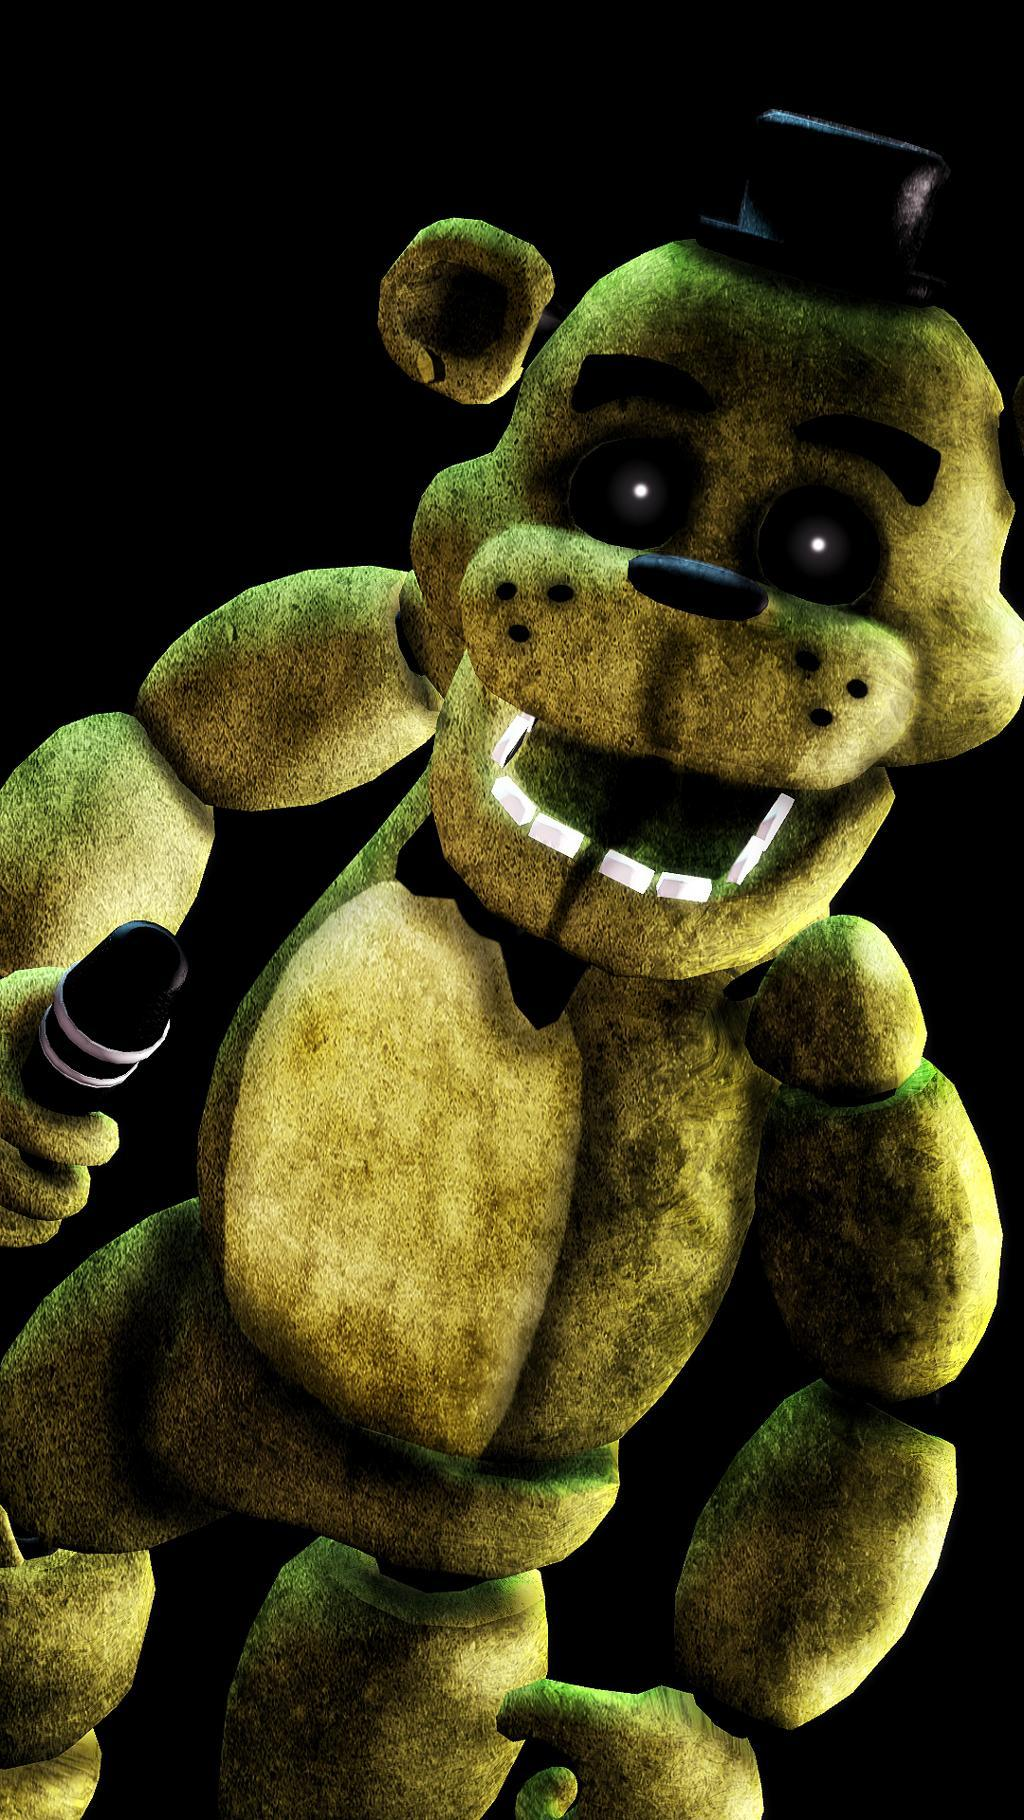 Download Golden Freddy wallpapers to your cell phone - faz five ...